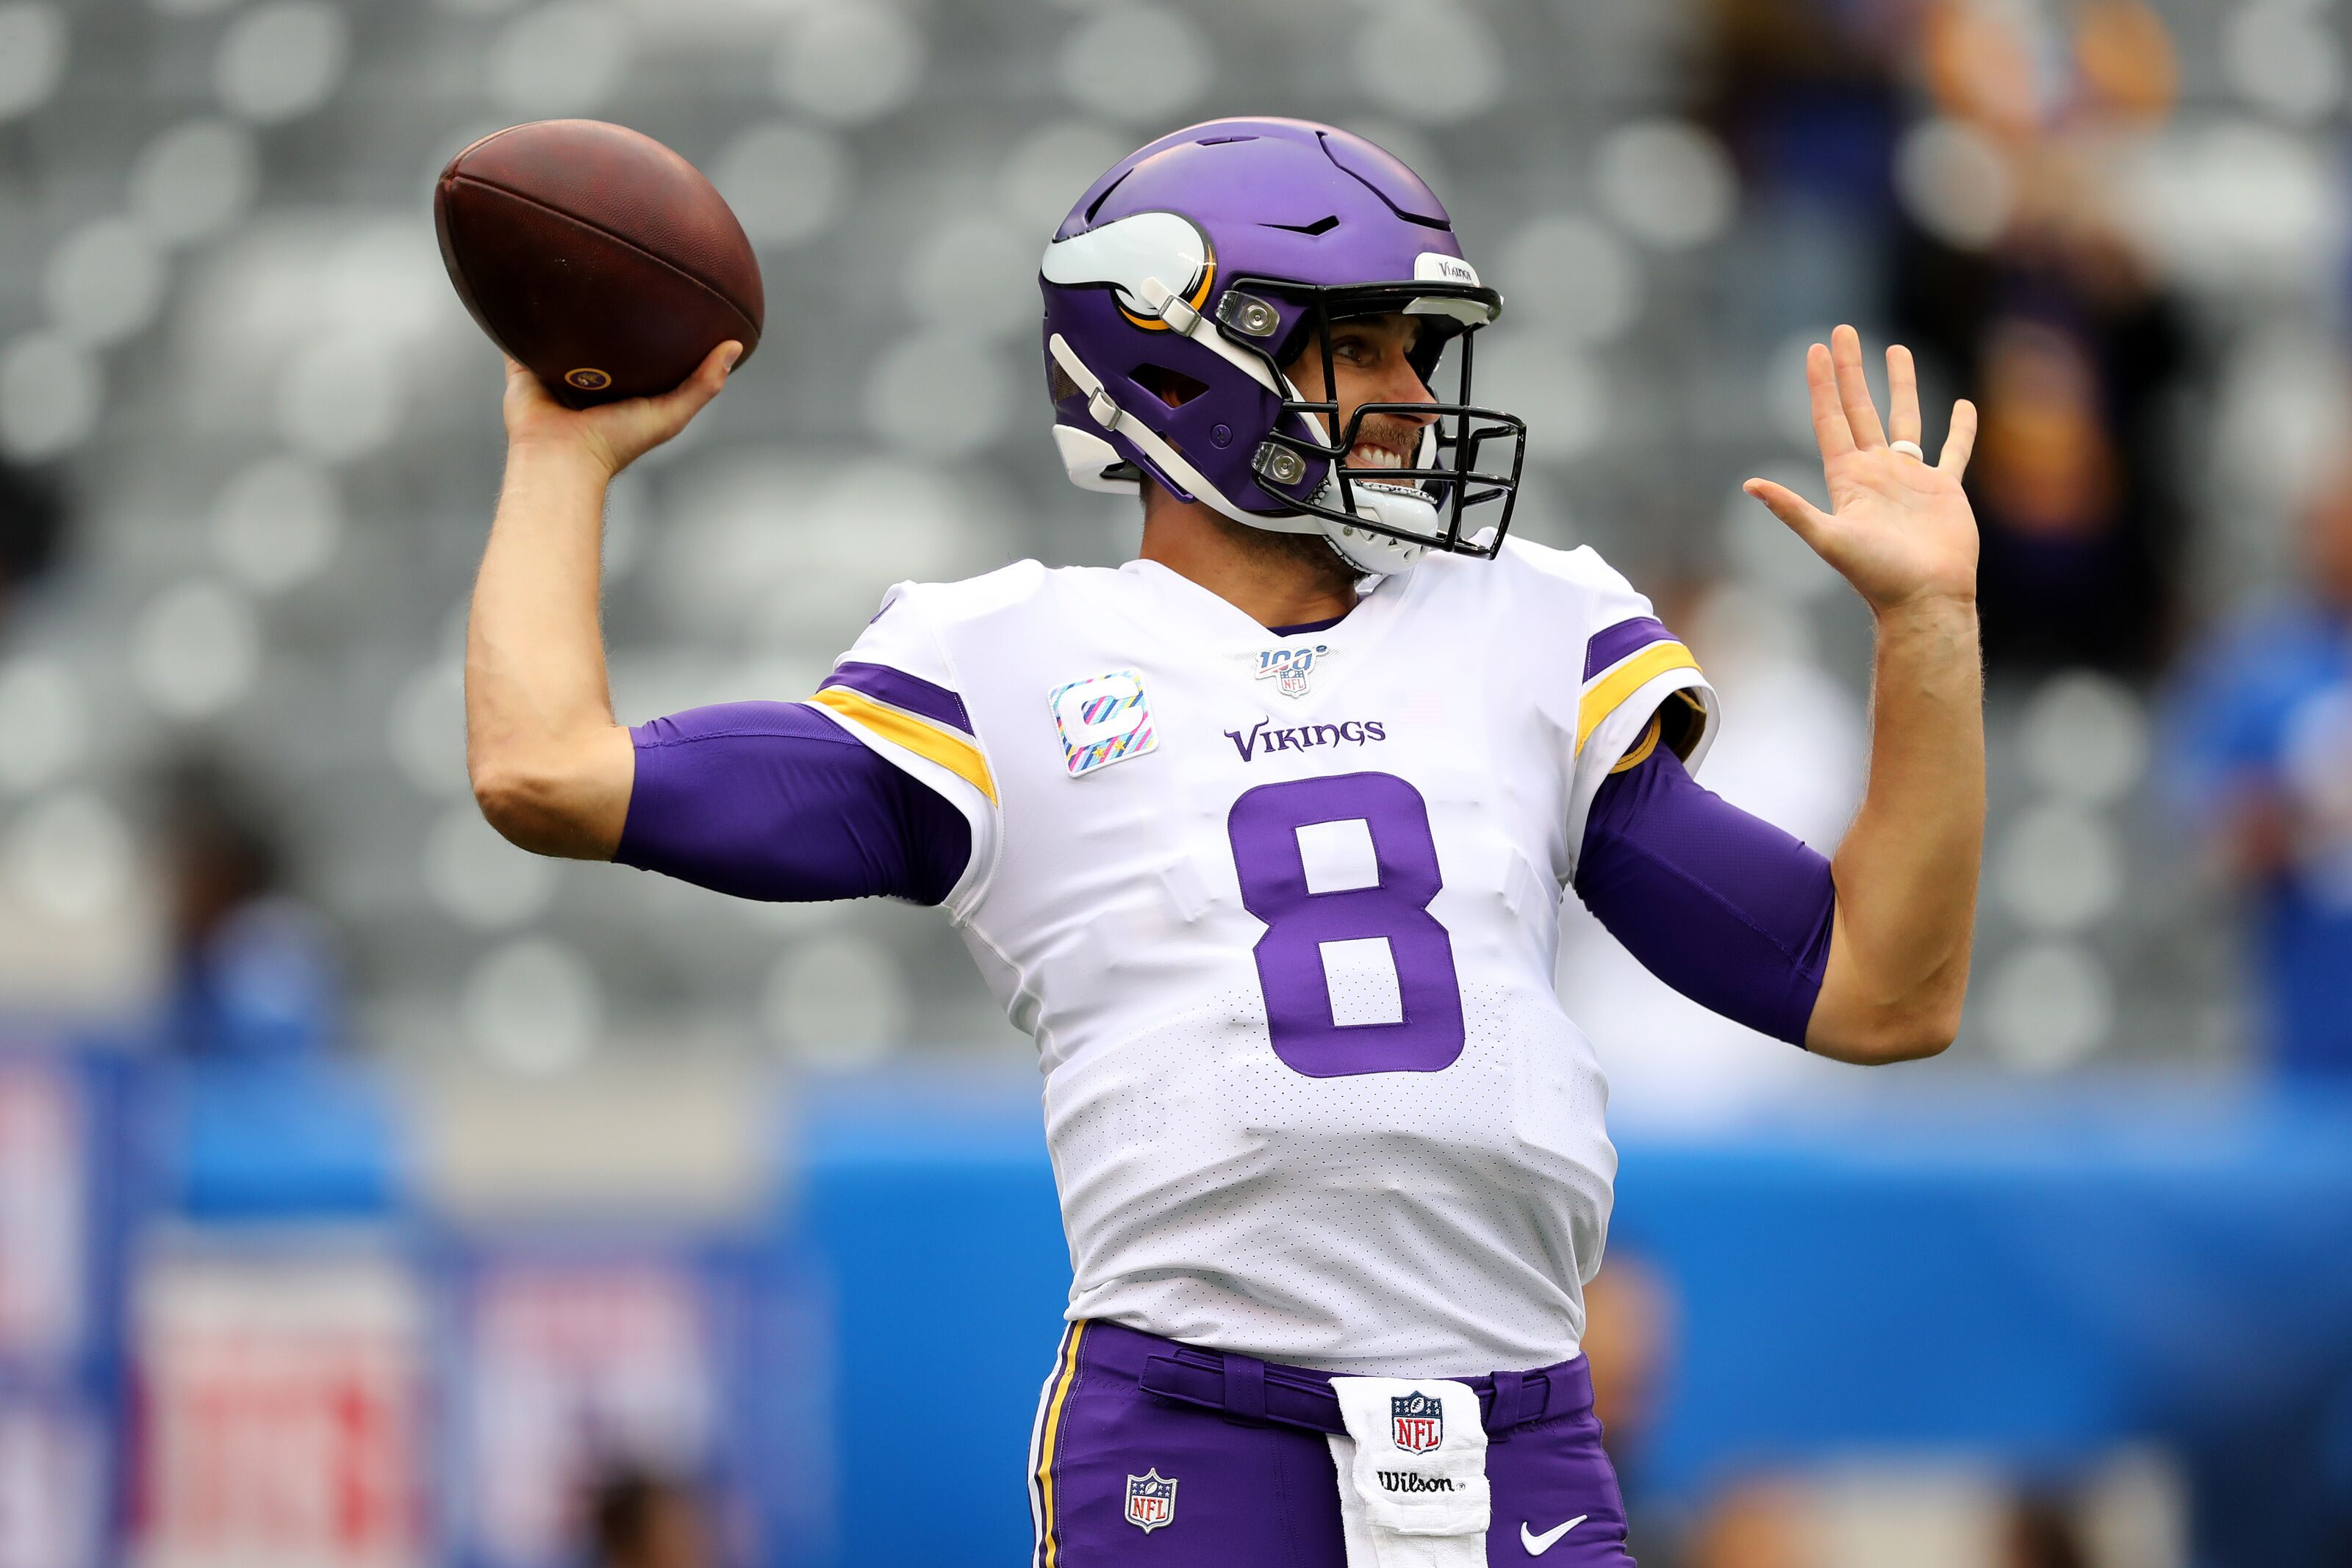 Minnesota Vikings: Could Kirk Cousins seriously win NFL MVP in 2019?